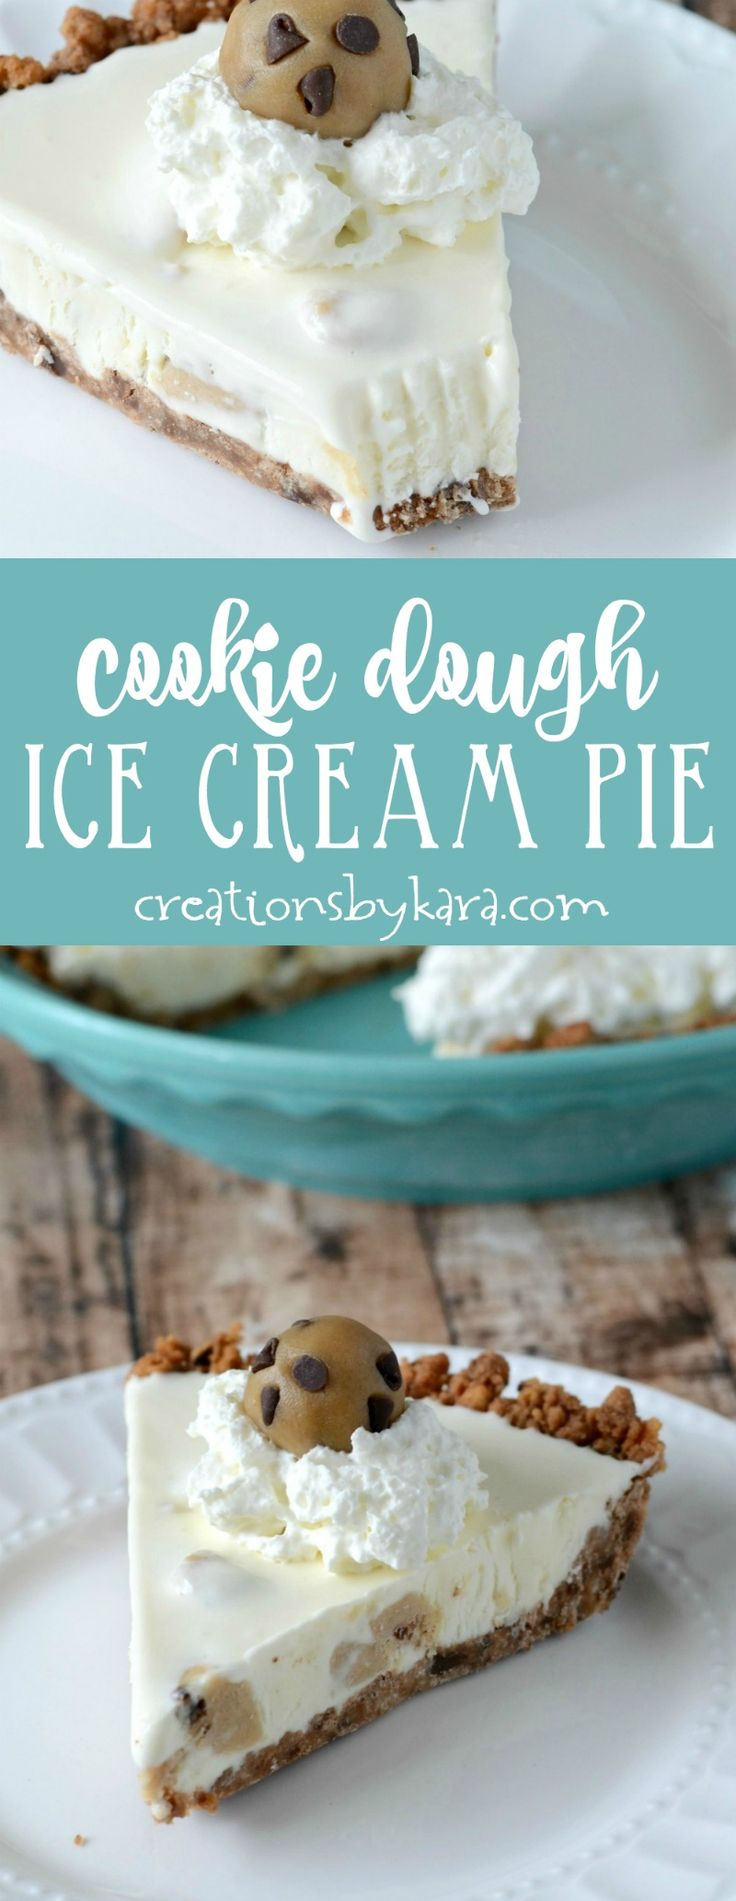 Recipe for Chocolate Chip Cookie Dough Ice Cream Pie - if you love cookie dough, you must try this dessert! Perfect for cookie dough fans. via creationsbykara.com